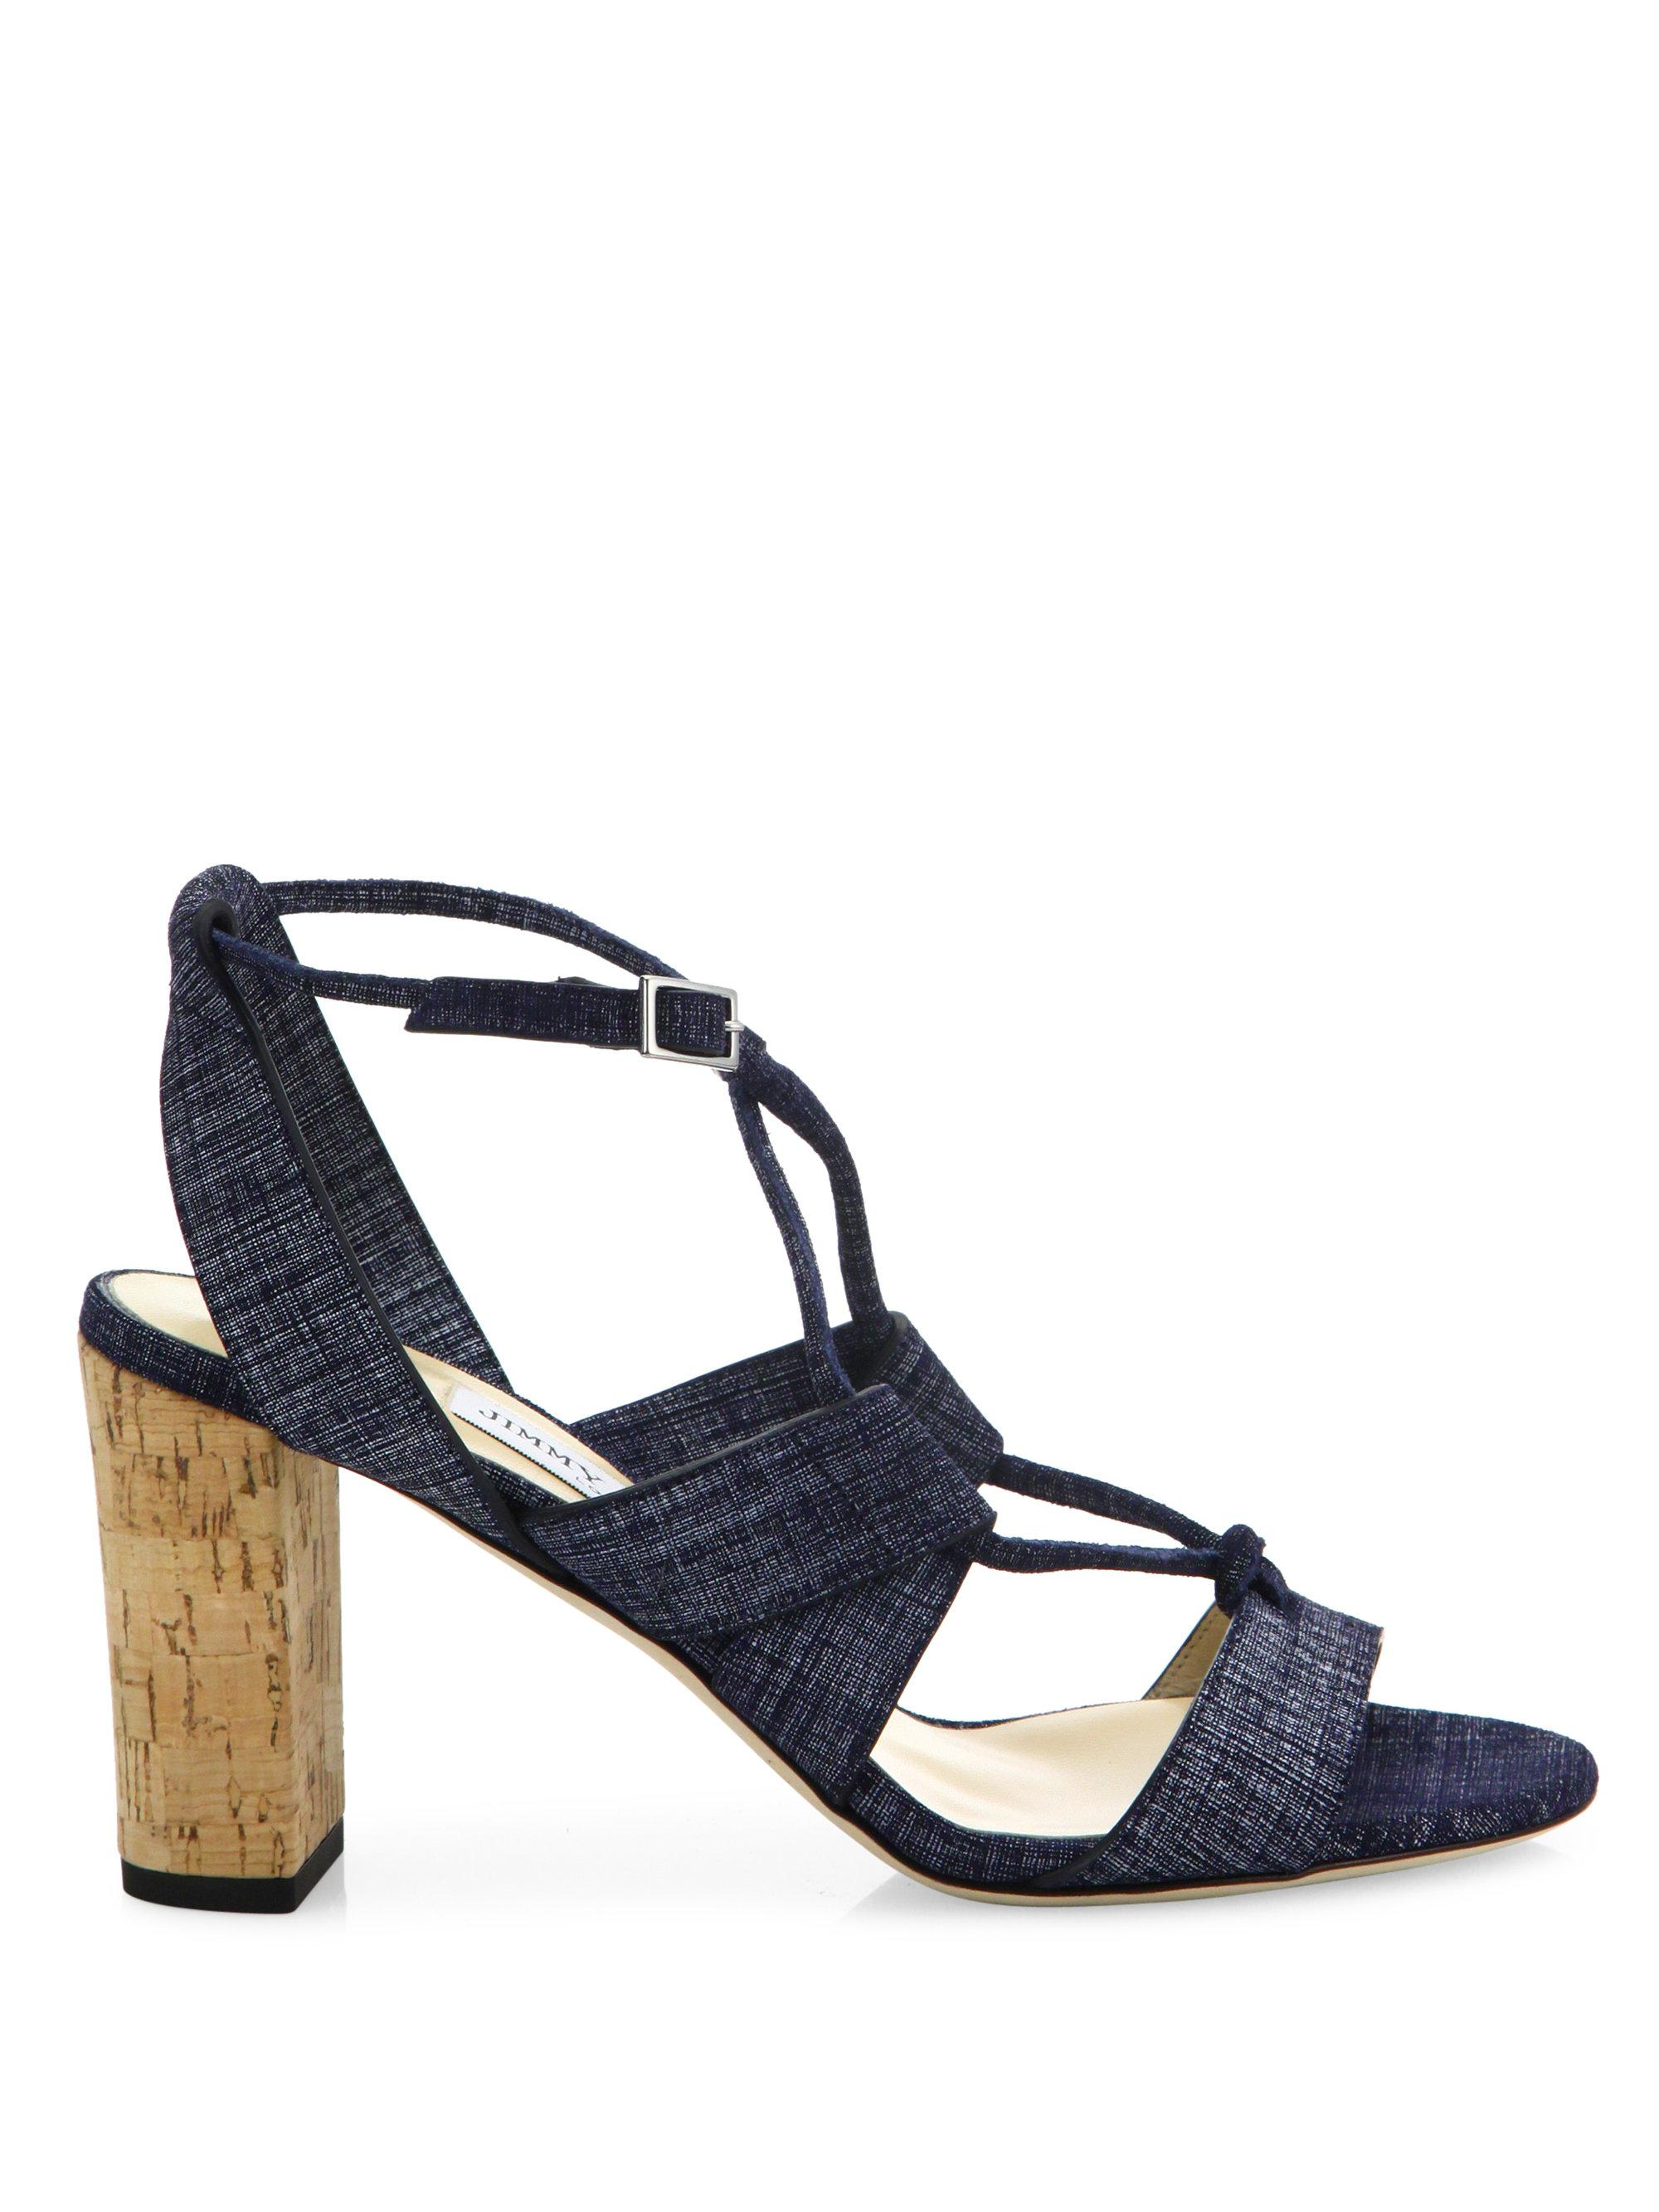 ddc5c539e1a Lyst - Jimmy Choo Margo Cork-heel Denim Lace-up Sandals in Blue